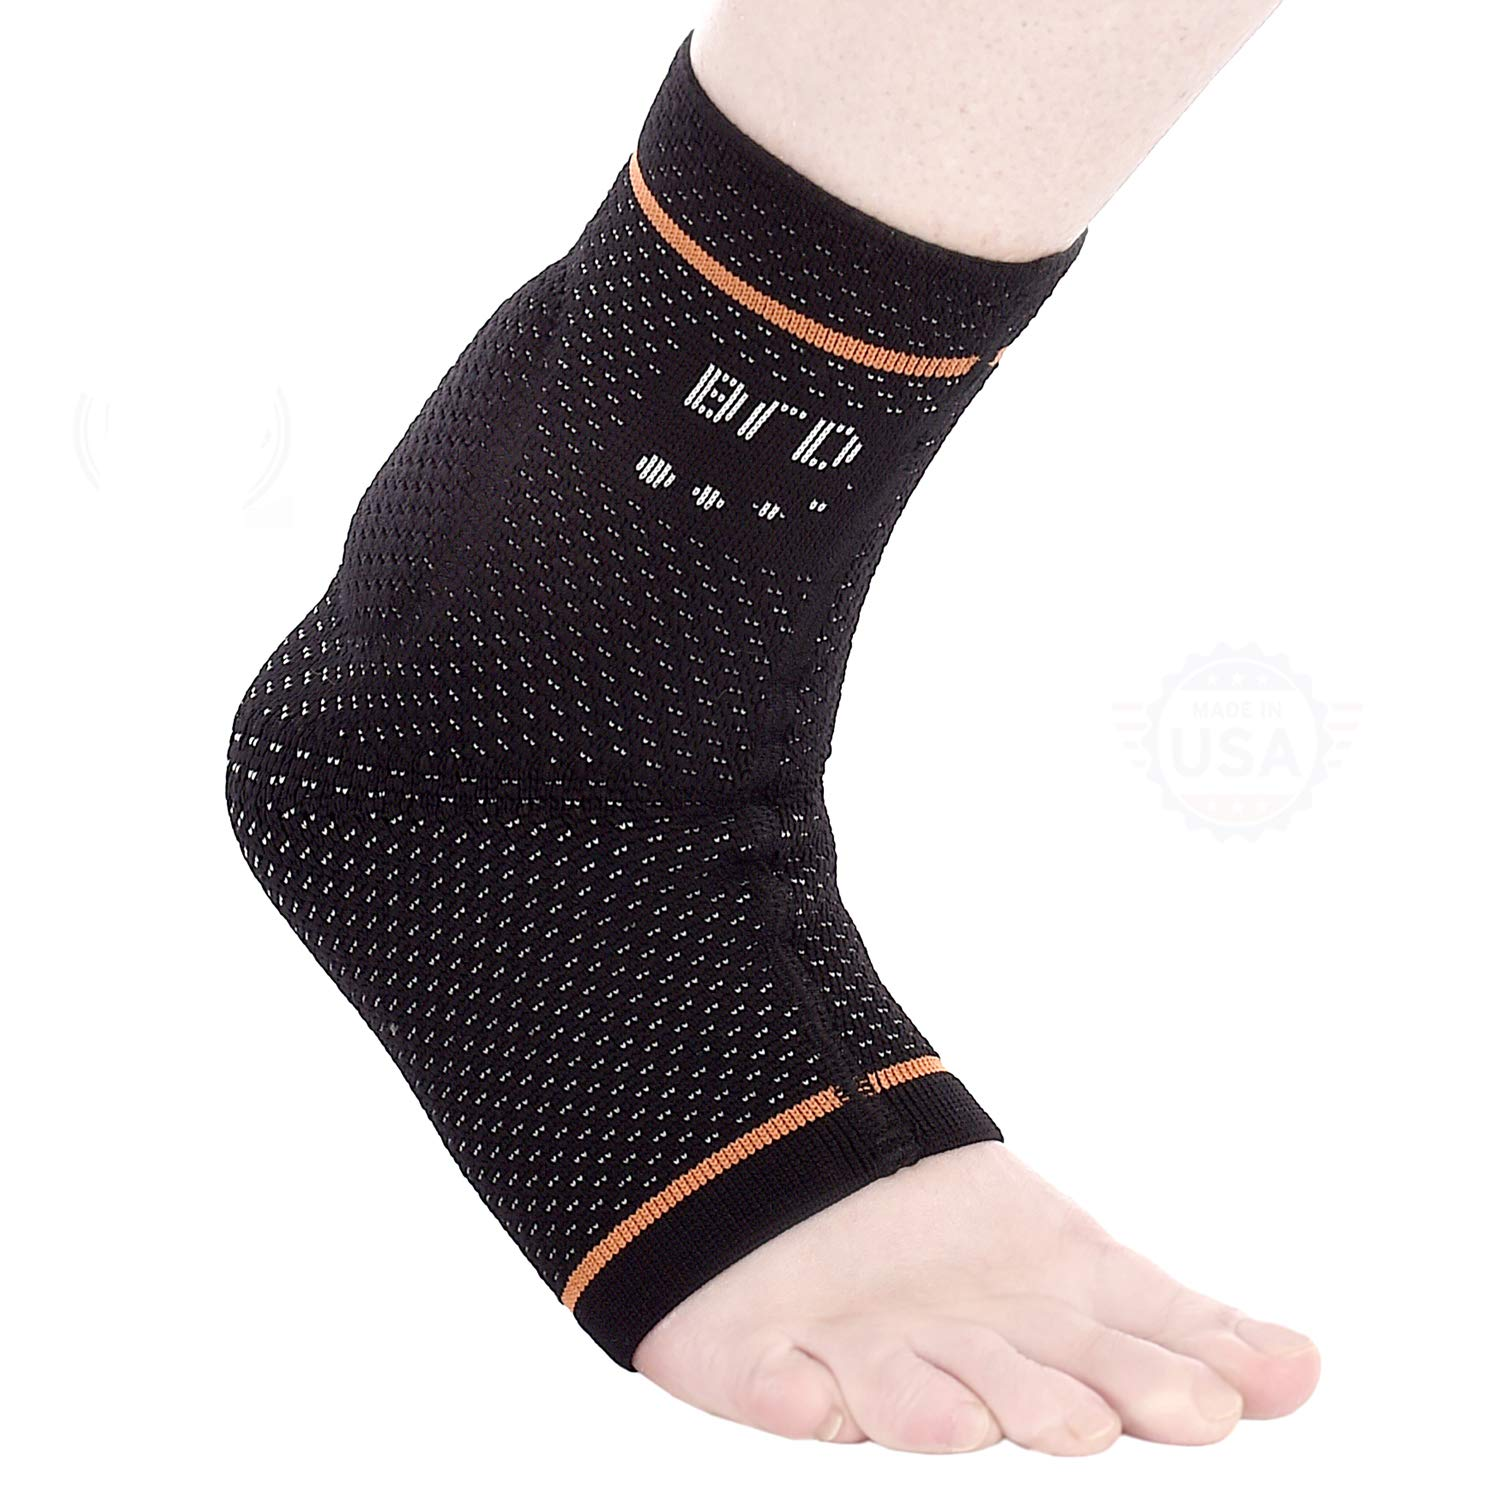 BRD Sport Achilles Compression Ankle Brace - FDA Registered Brace Offers Breathable, Comfortable Recovery from Pain, Swelling, Tendonitis (Black with Orange Accent Stripe, M [8.25''-9'']) by BRD Sport